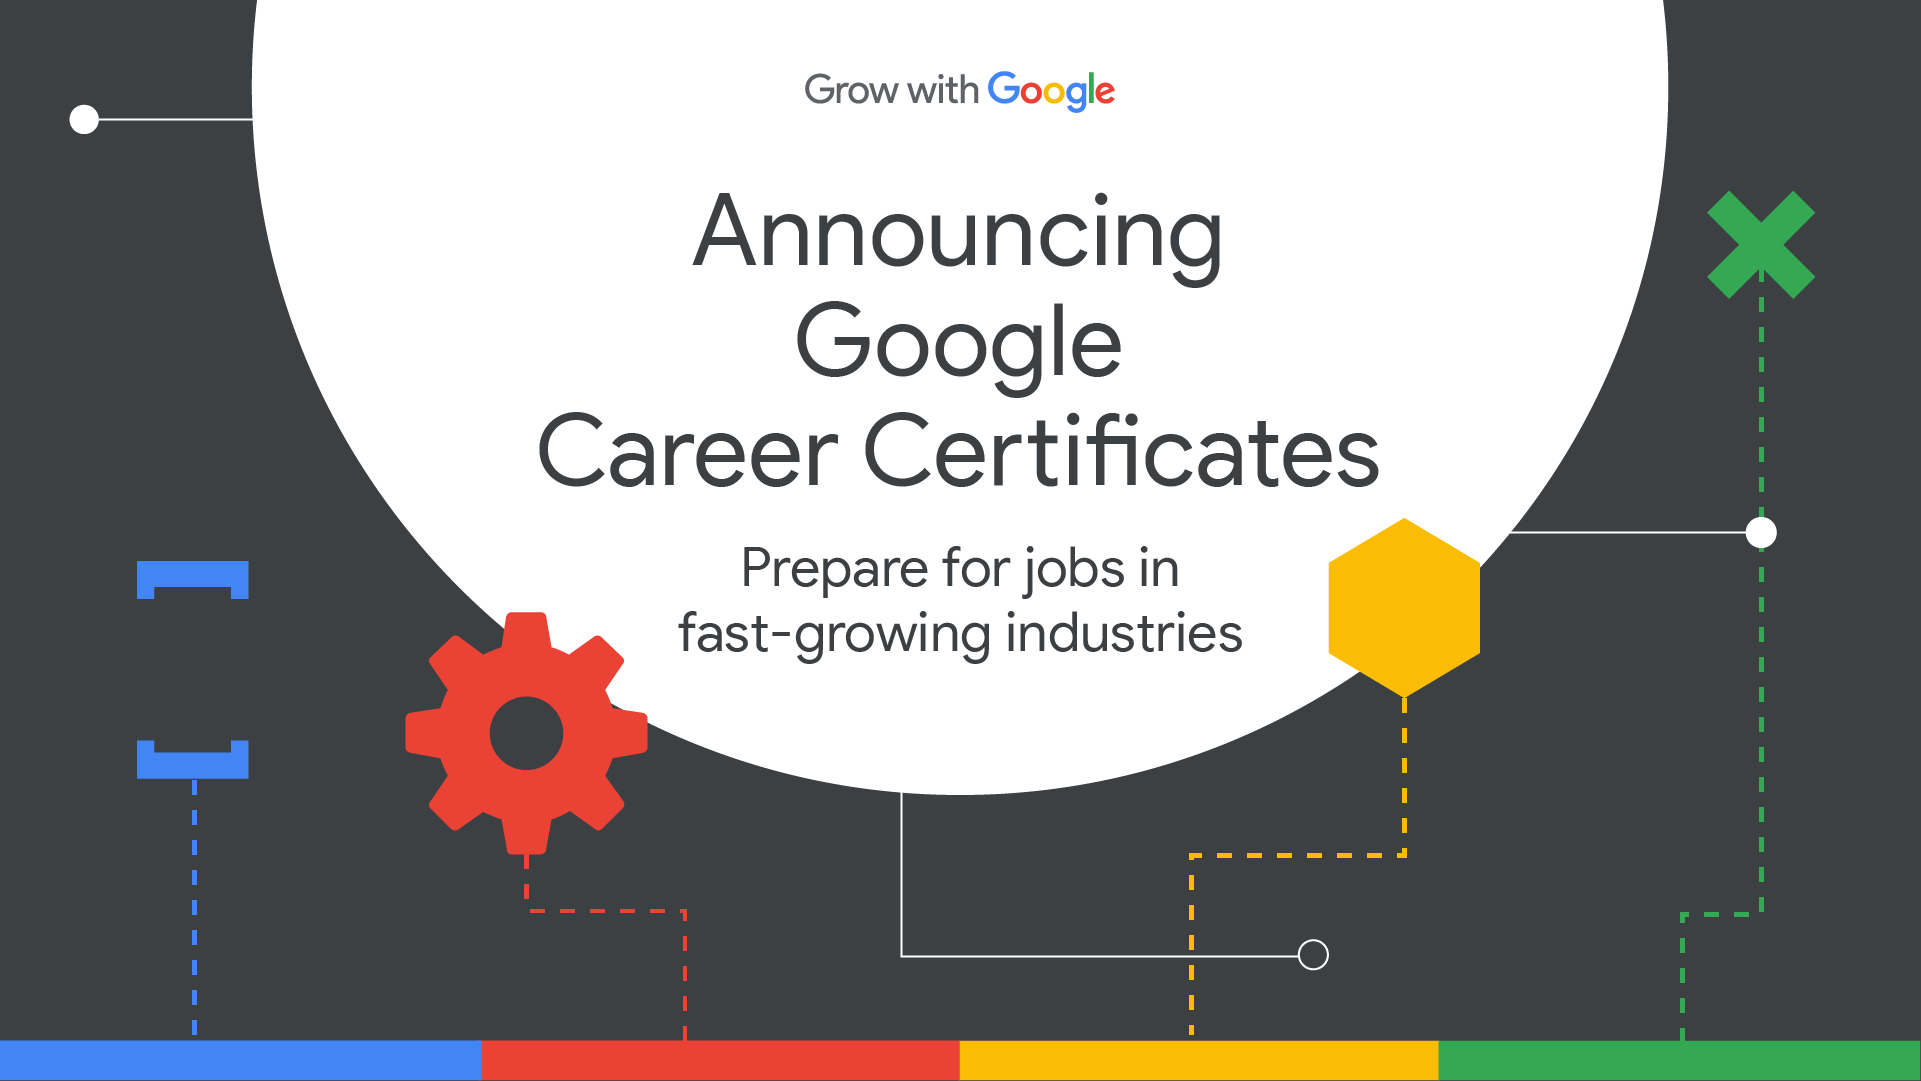 Google Offers Career Certificates in Data Analytics, Project Management, and UX Design